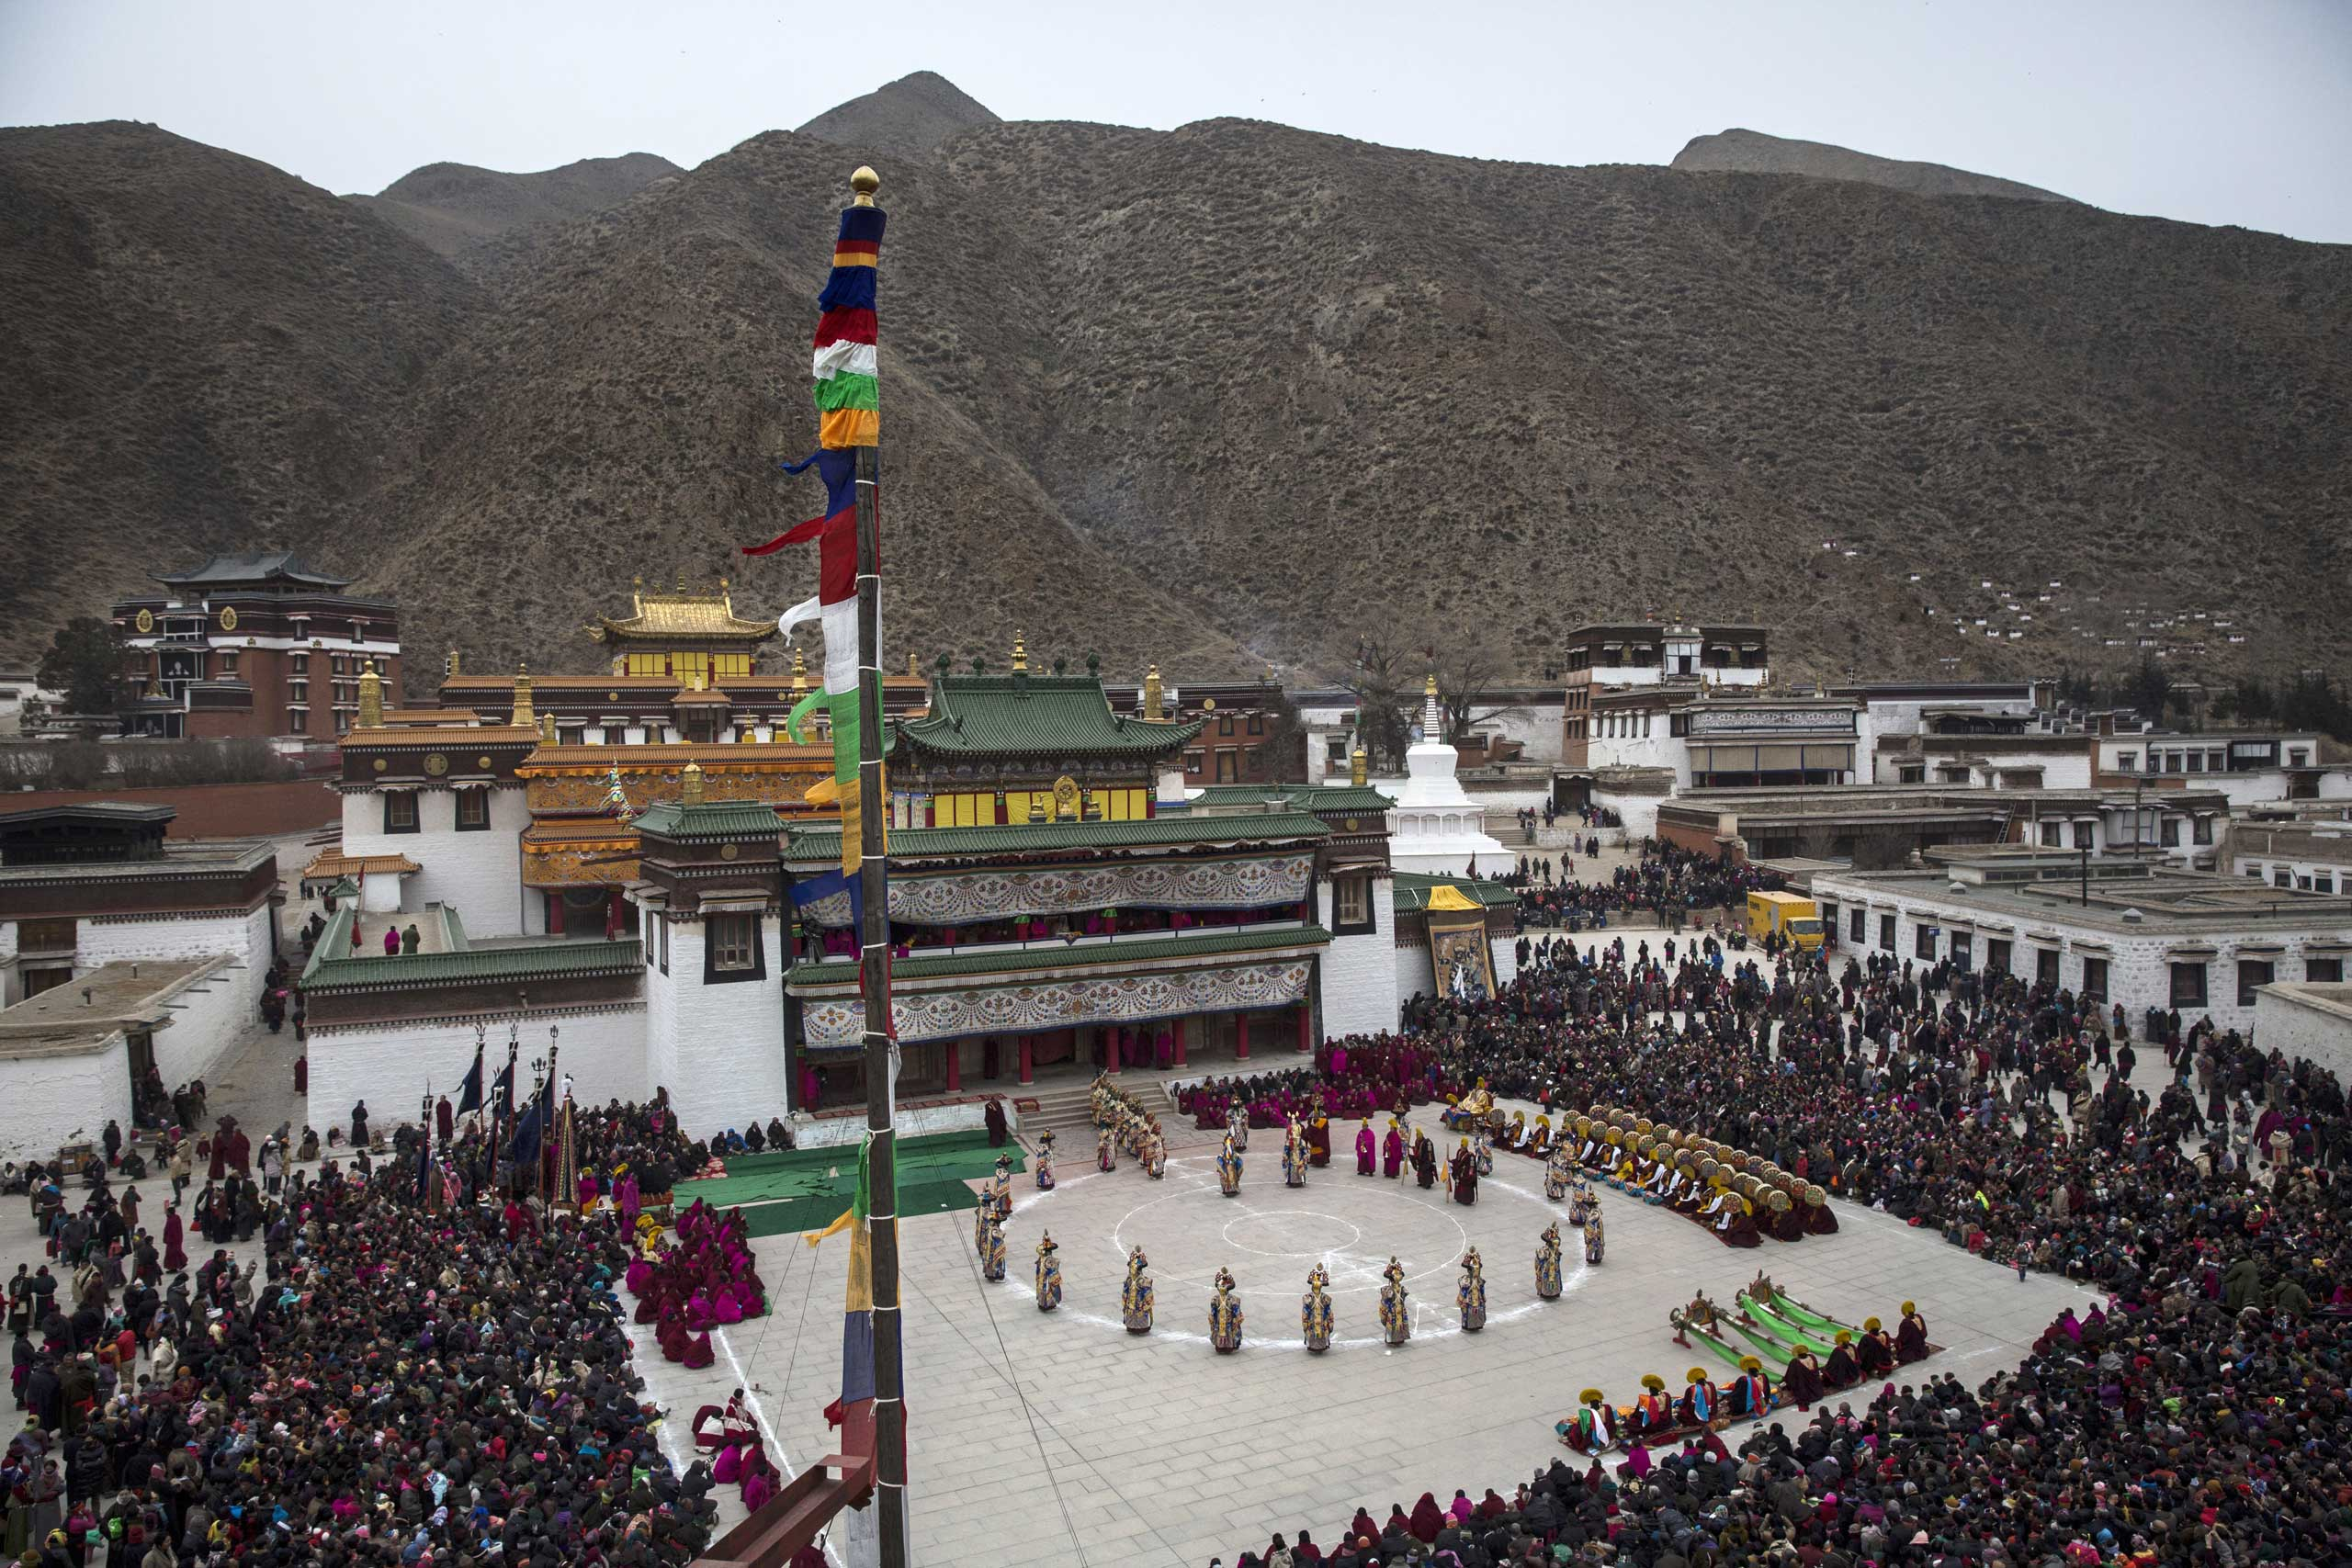 Tibetan Buddhist monks perform a mask dance during Monlam or the Great Prayer rituals on March 4, 2015 at the Labrang Monastery.